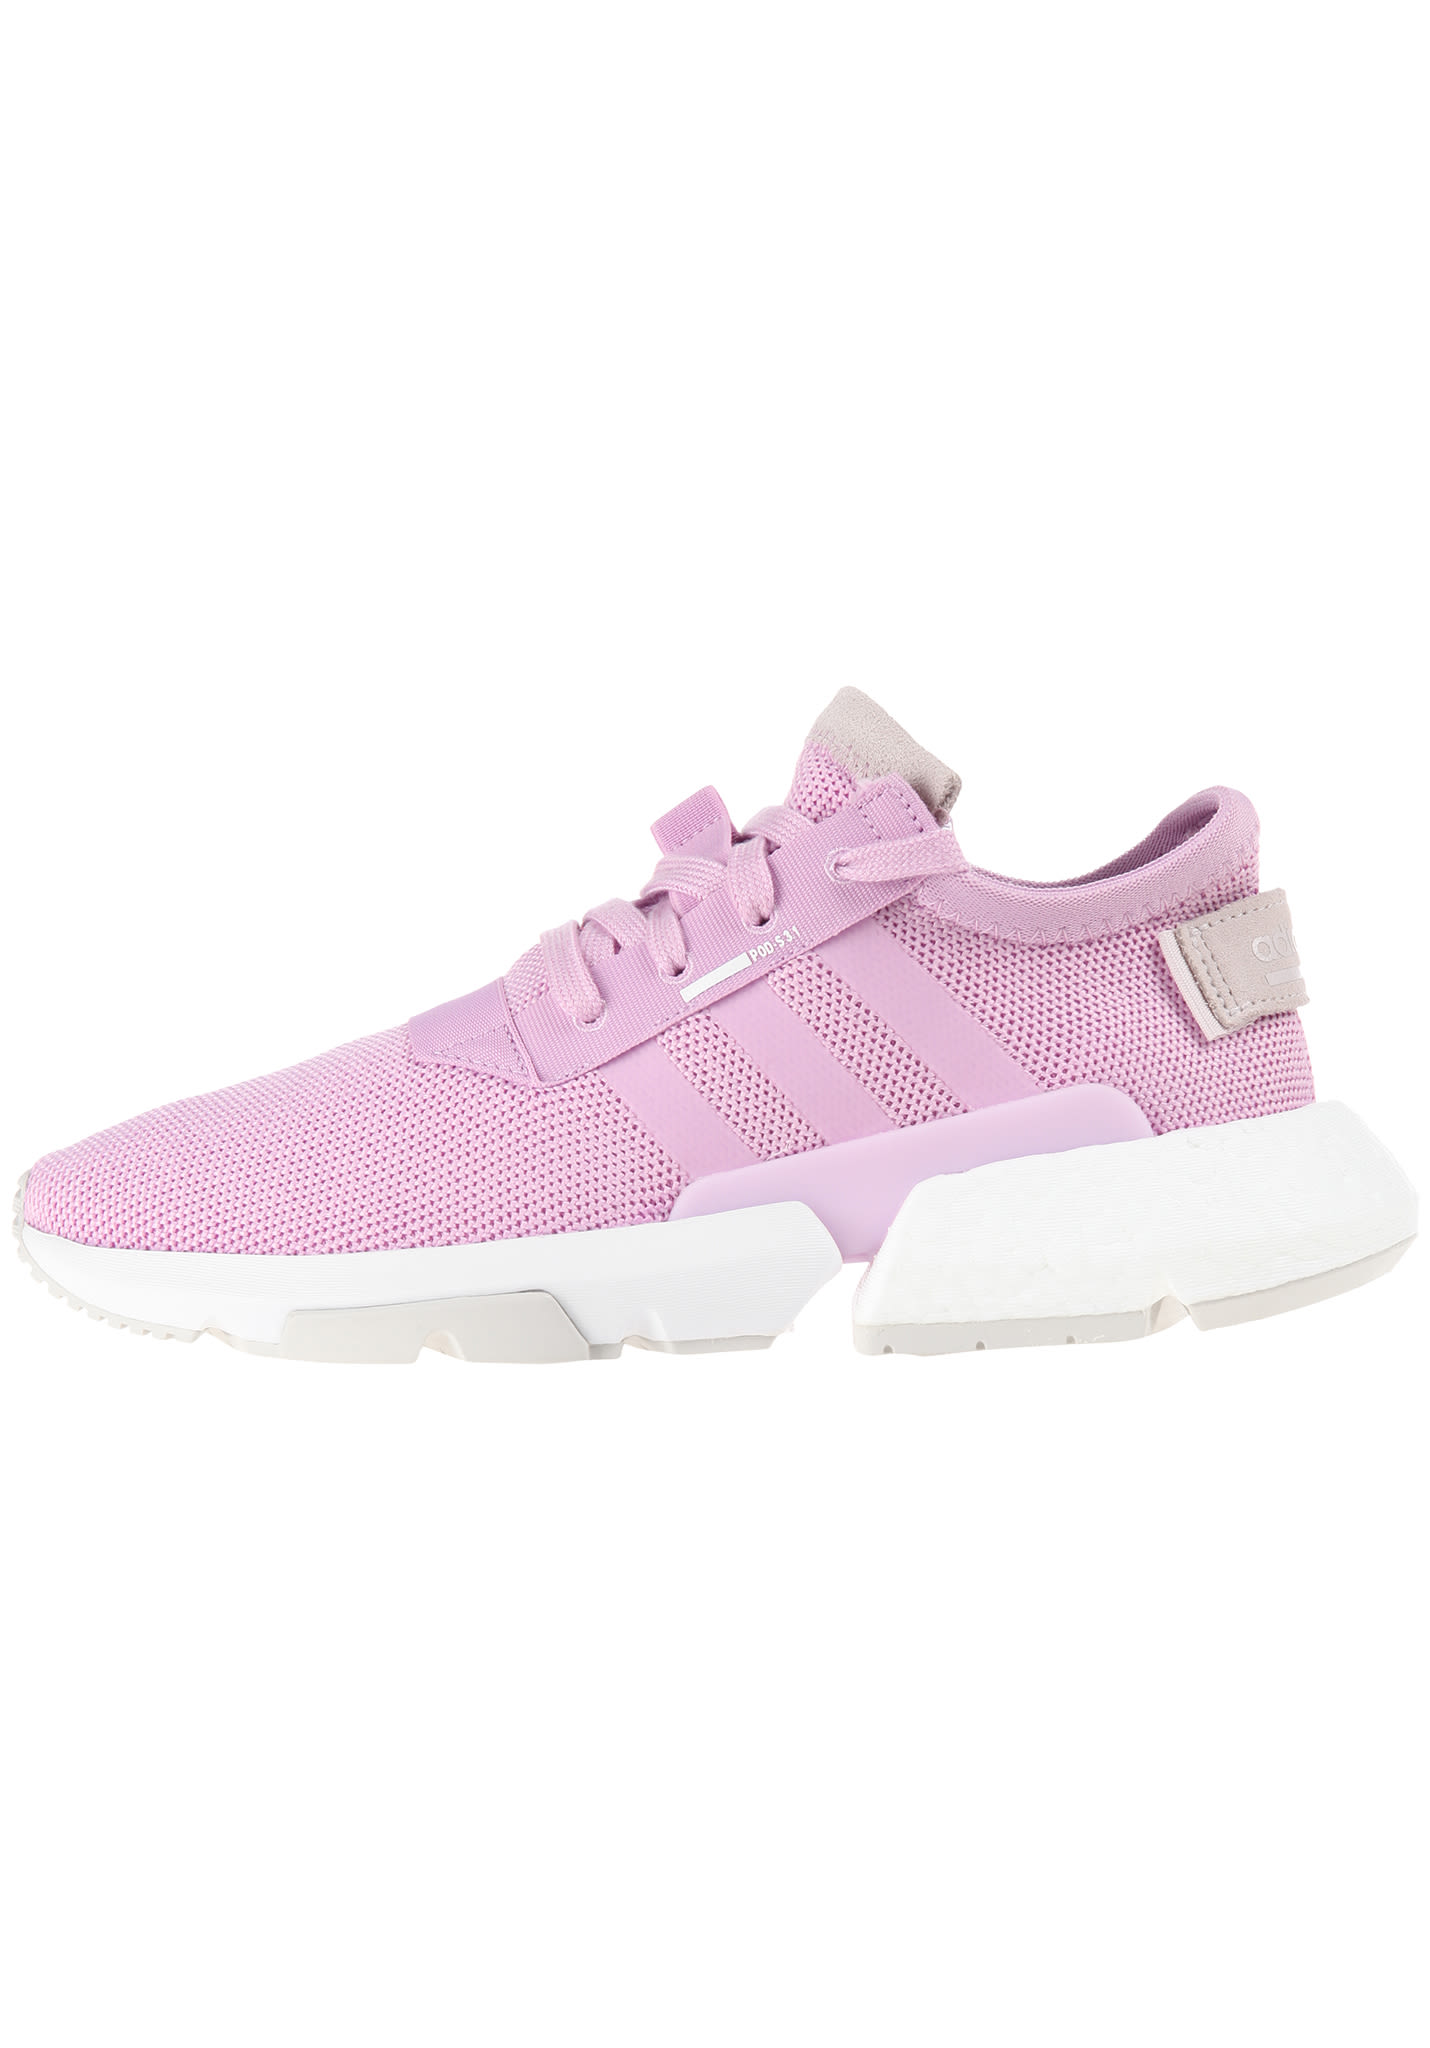 ADIDAS ORIGINALS POD-S3.1 - Baskets pour Femme - Rose